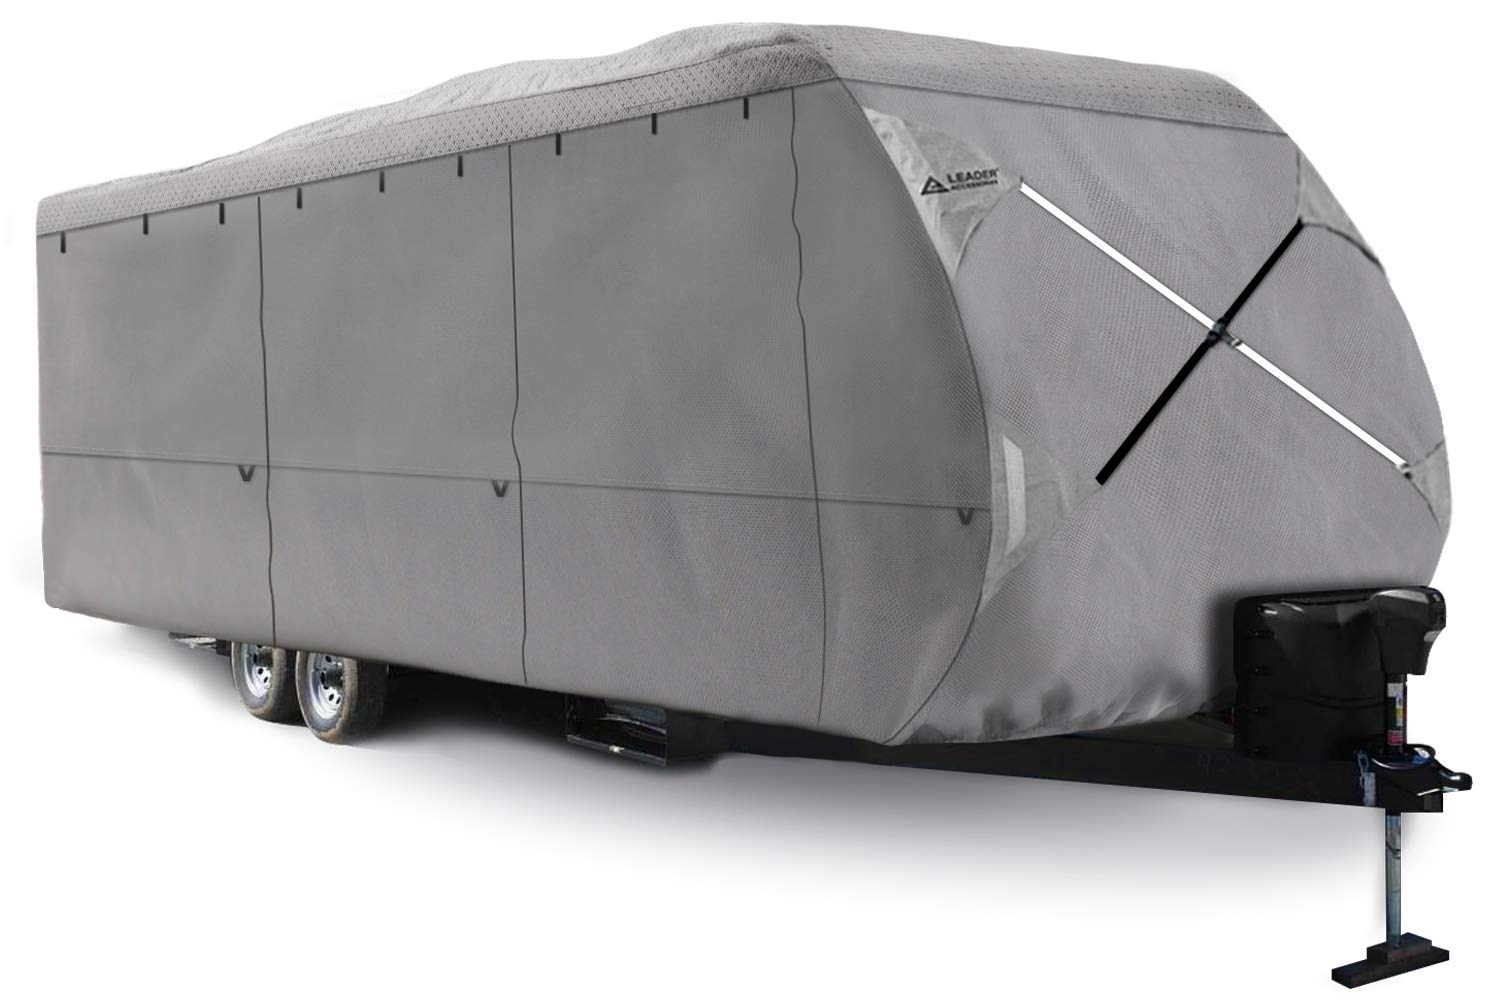 Leader Accessories Travel Trailer RV cover (4 Layer Top/Grey, Fits 27'-30') by Leader Accessories (Image #1)